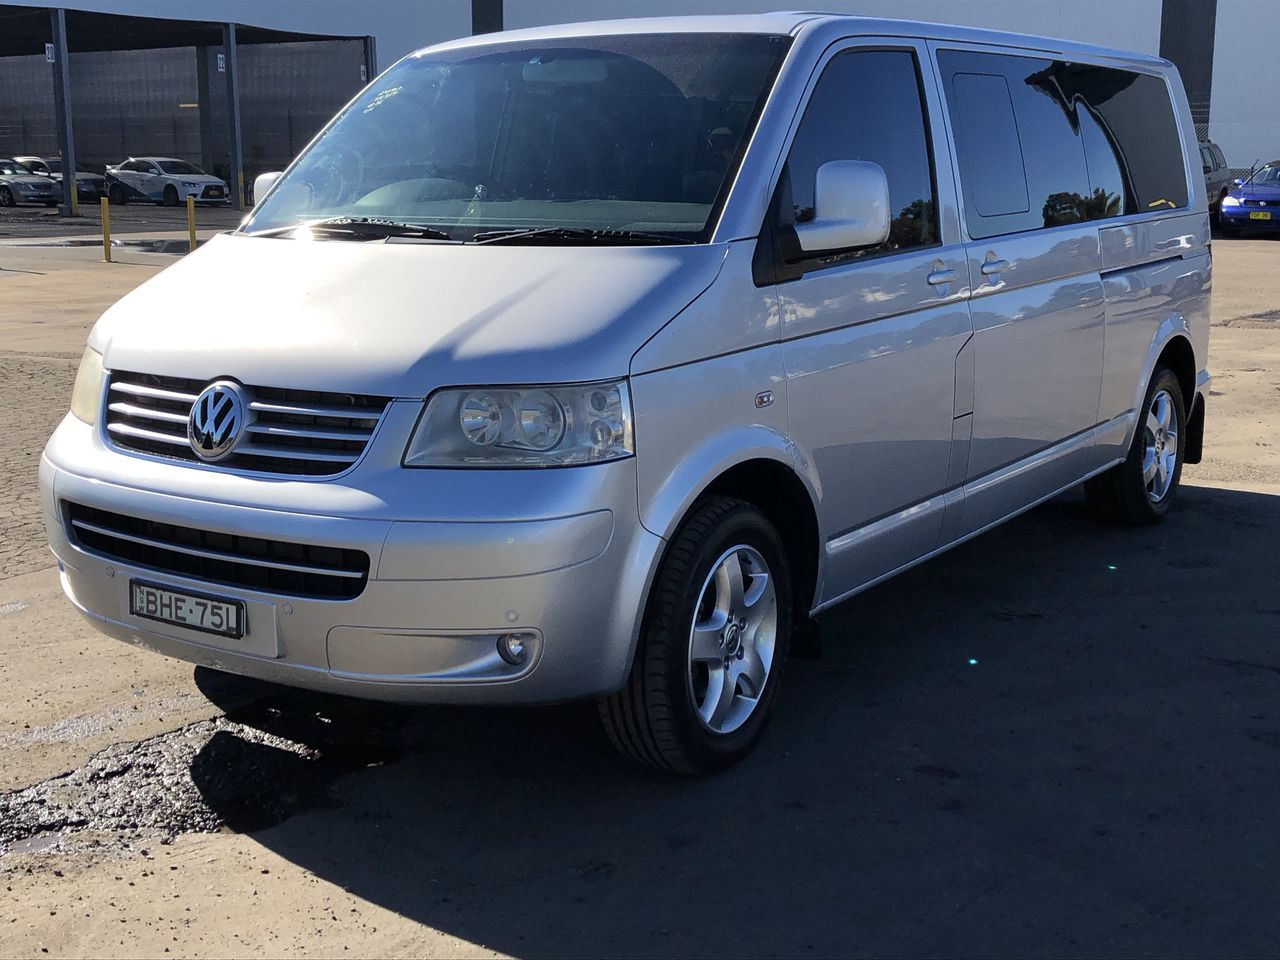 2008 Volkswagen Caravelle LWB T5 Turbo Diesel Automatic 9 Seat People Mover